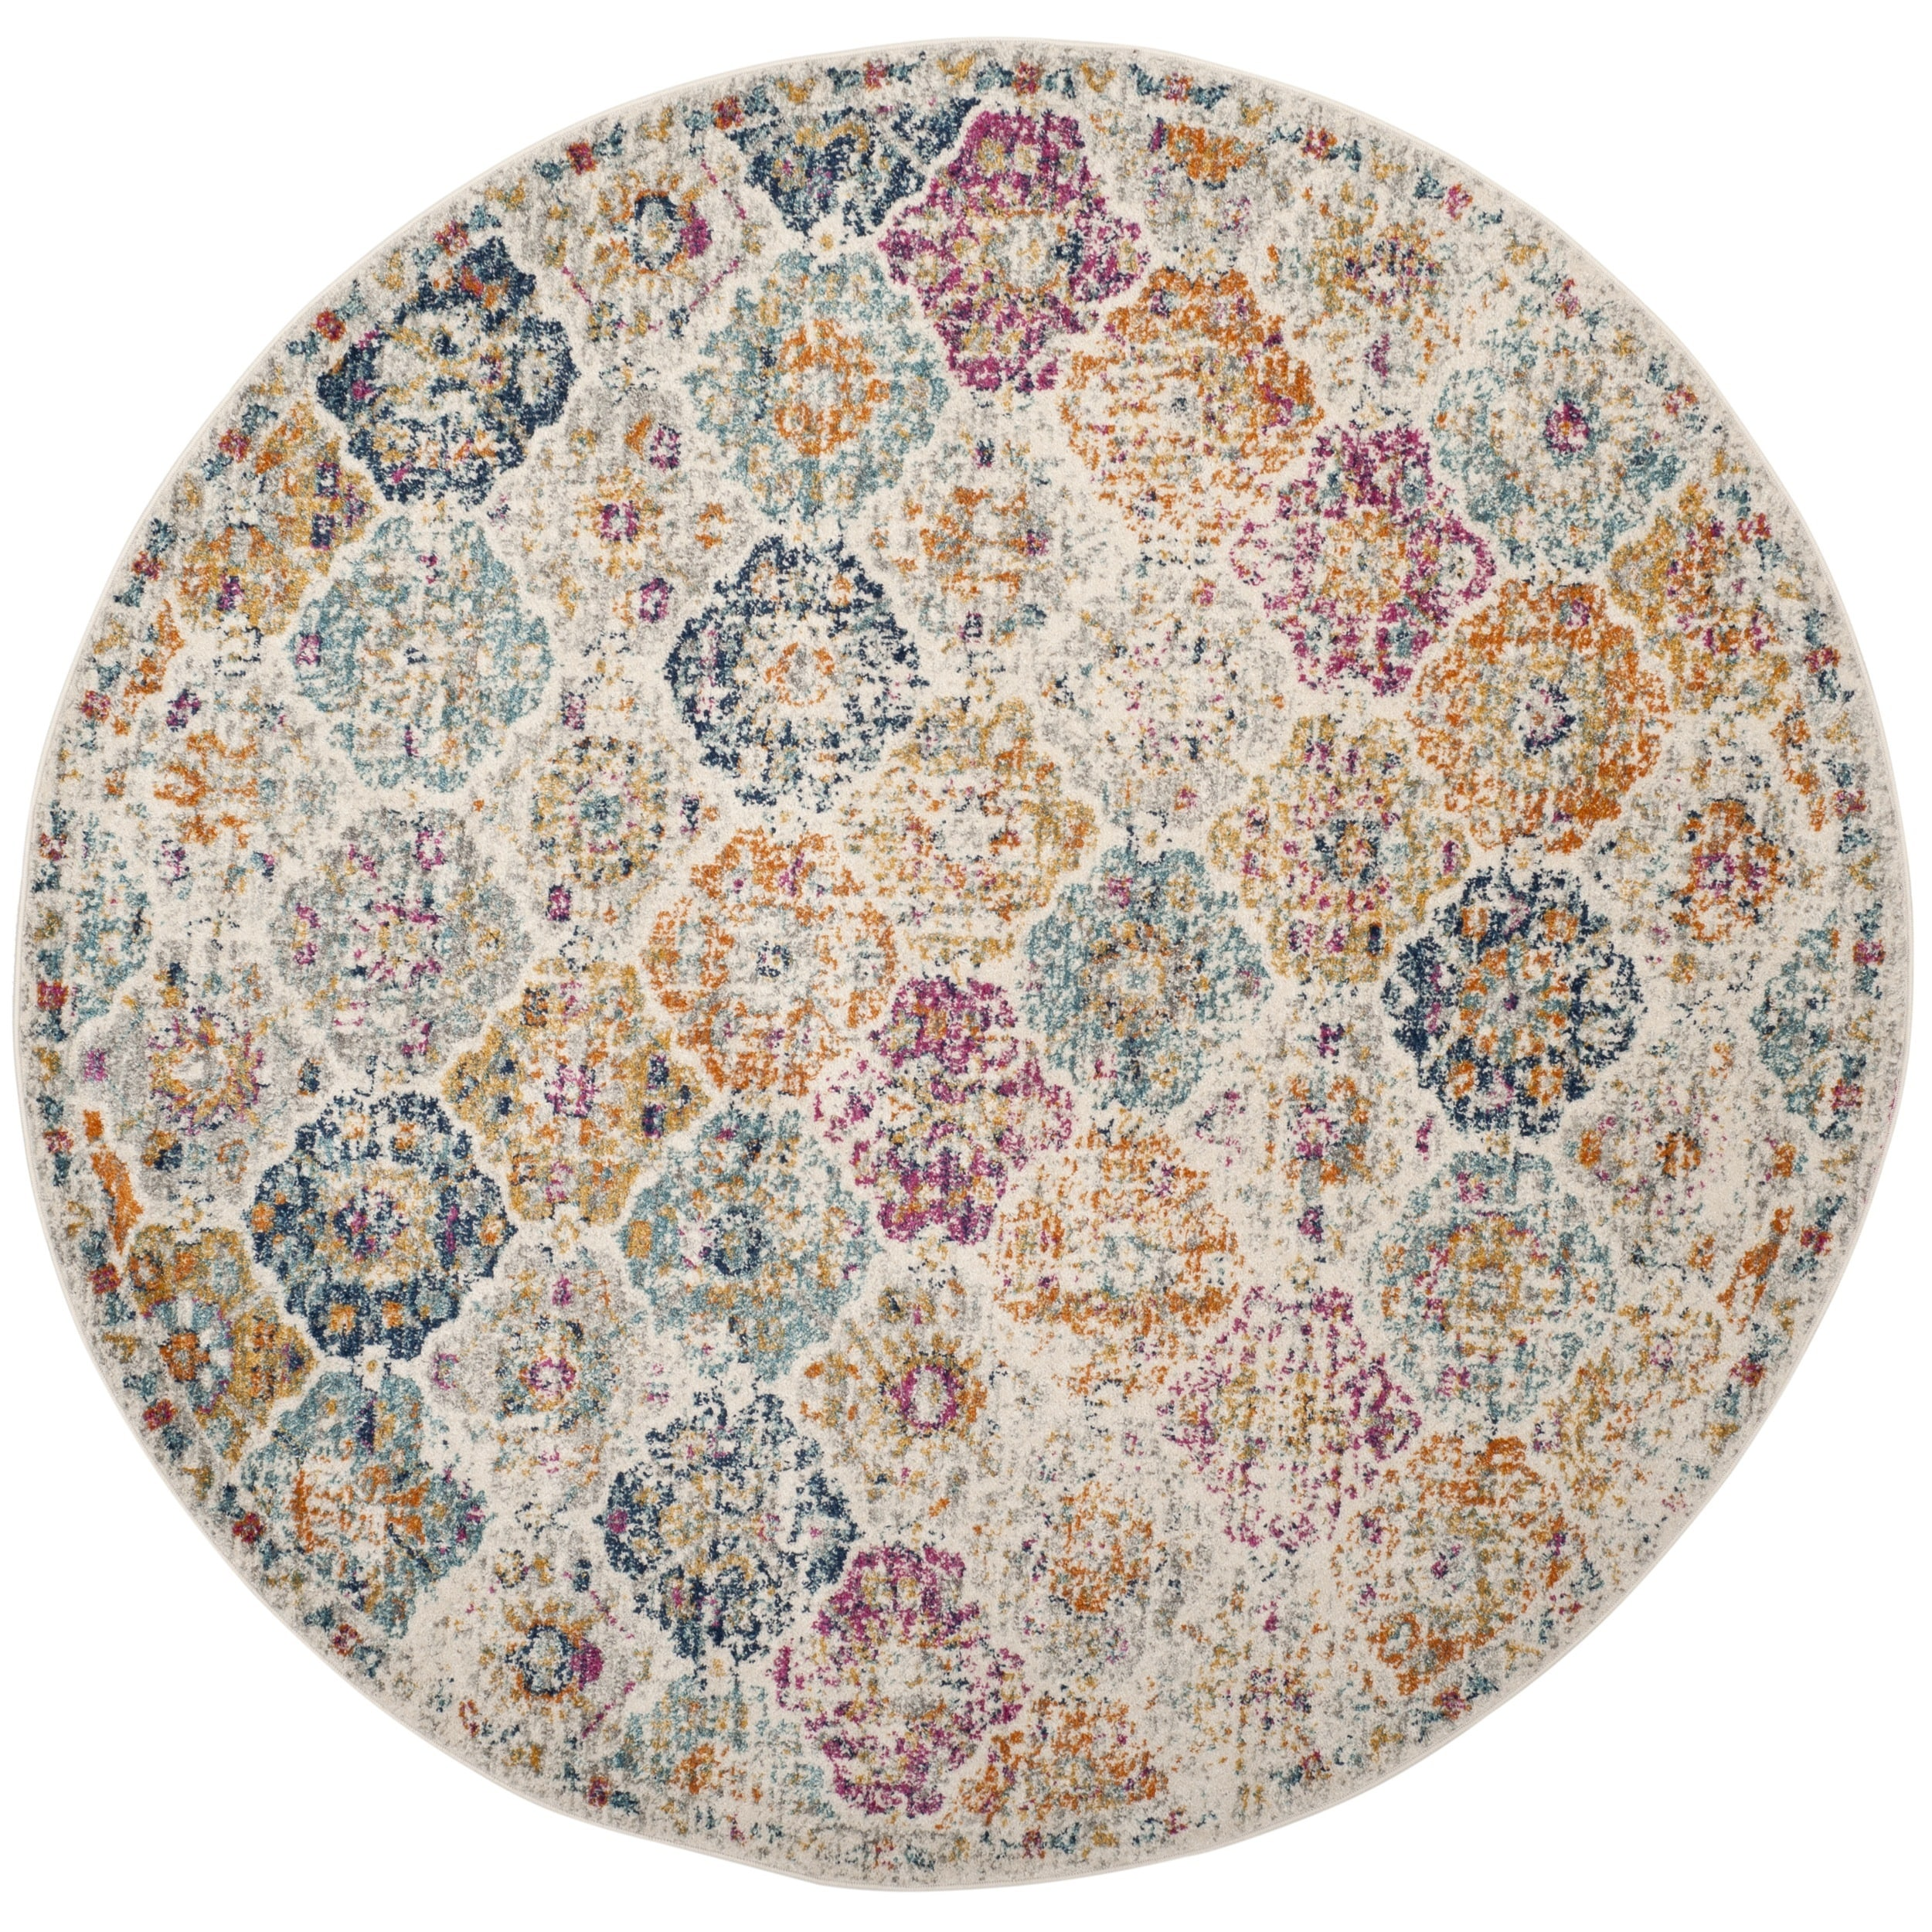 design with wells inspiration elegant super modern room round fine for crafty images area ideas rugs living traditional best rug as along style